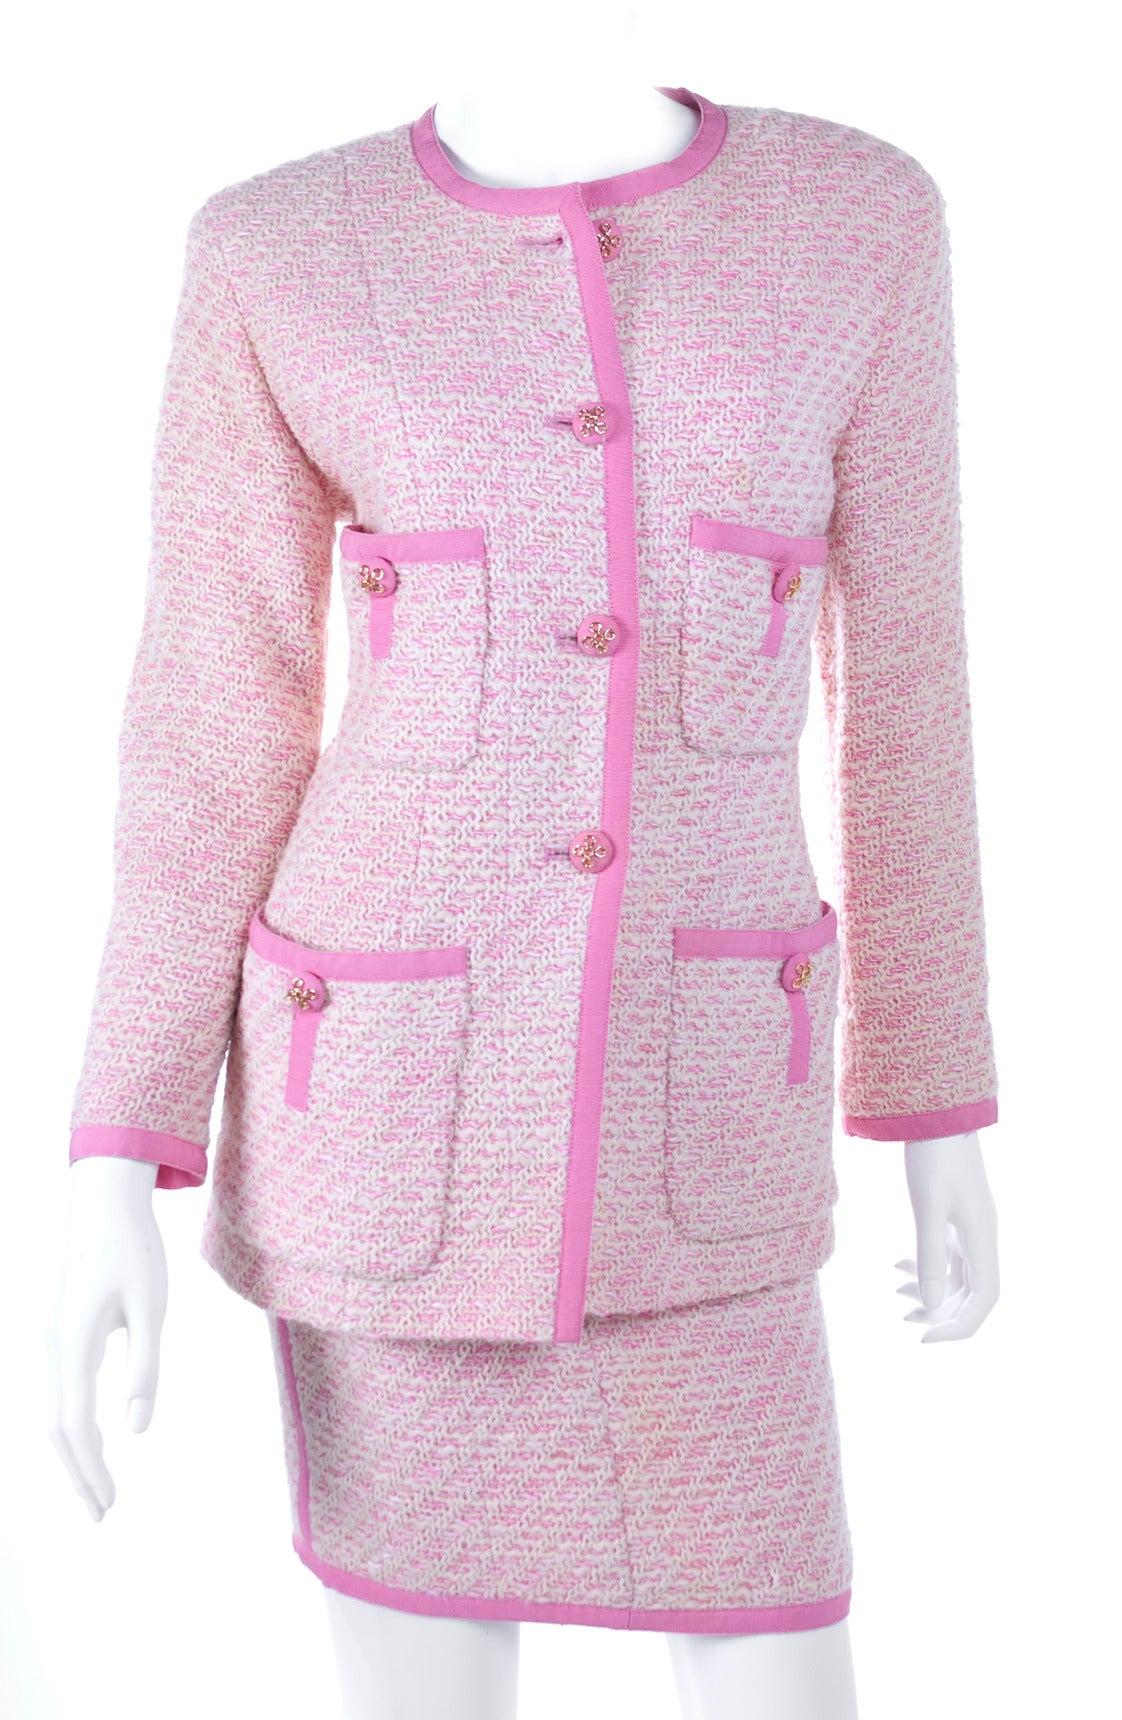 Chanel Suit in Pink and Creme Documented 1